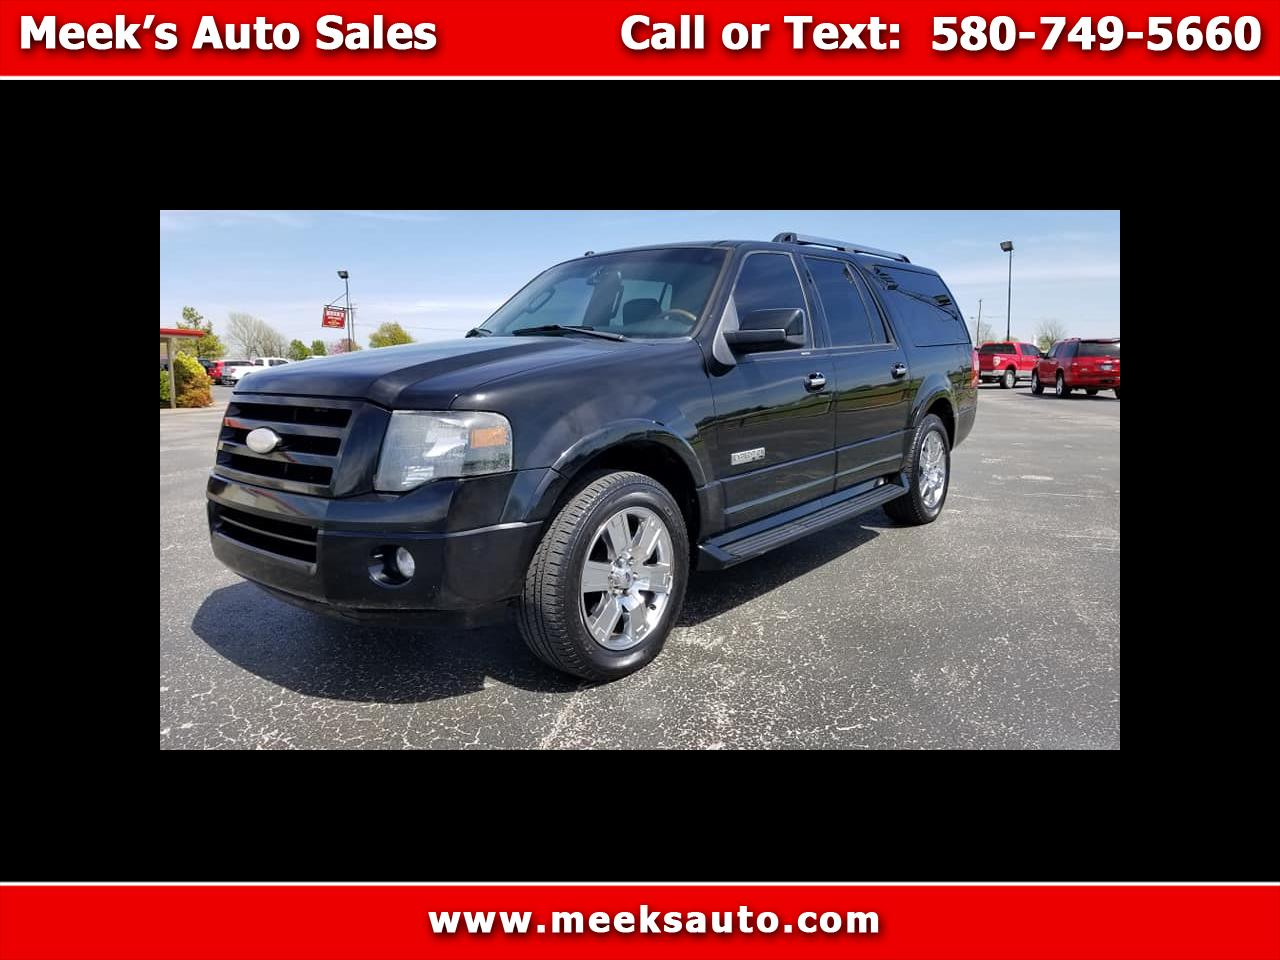 2007 Ford Expedition EL 2WD 4dr Limited